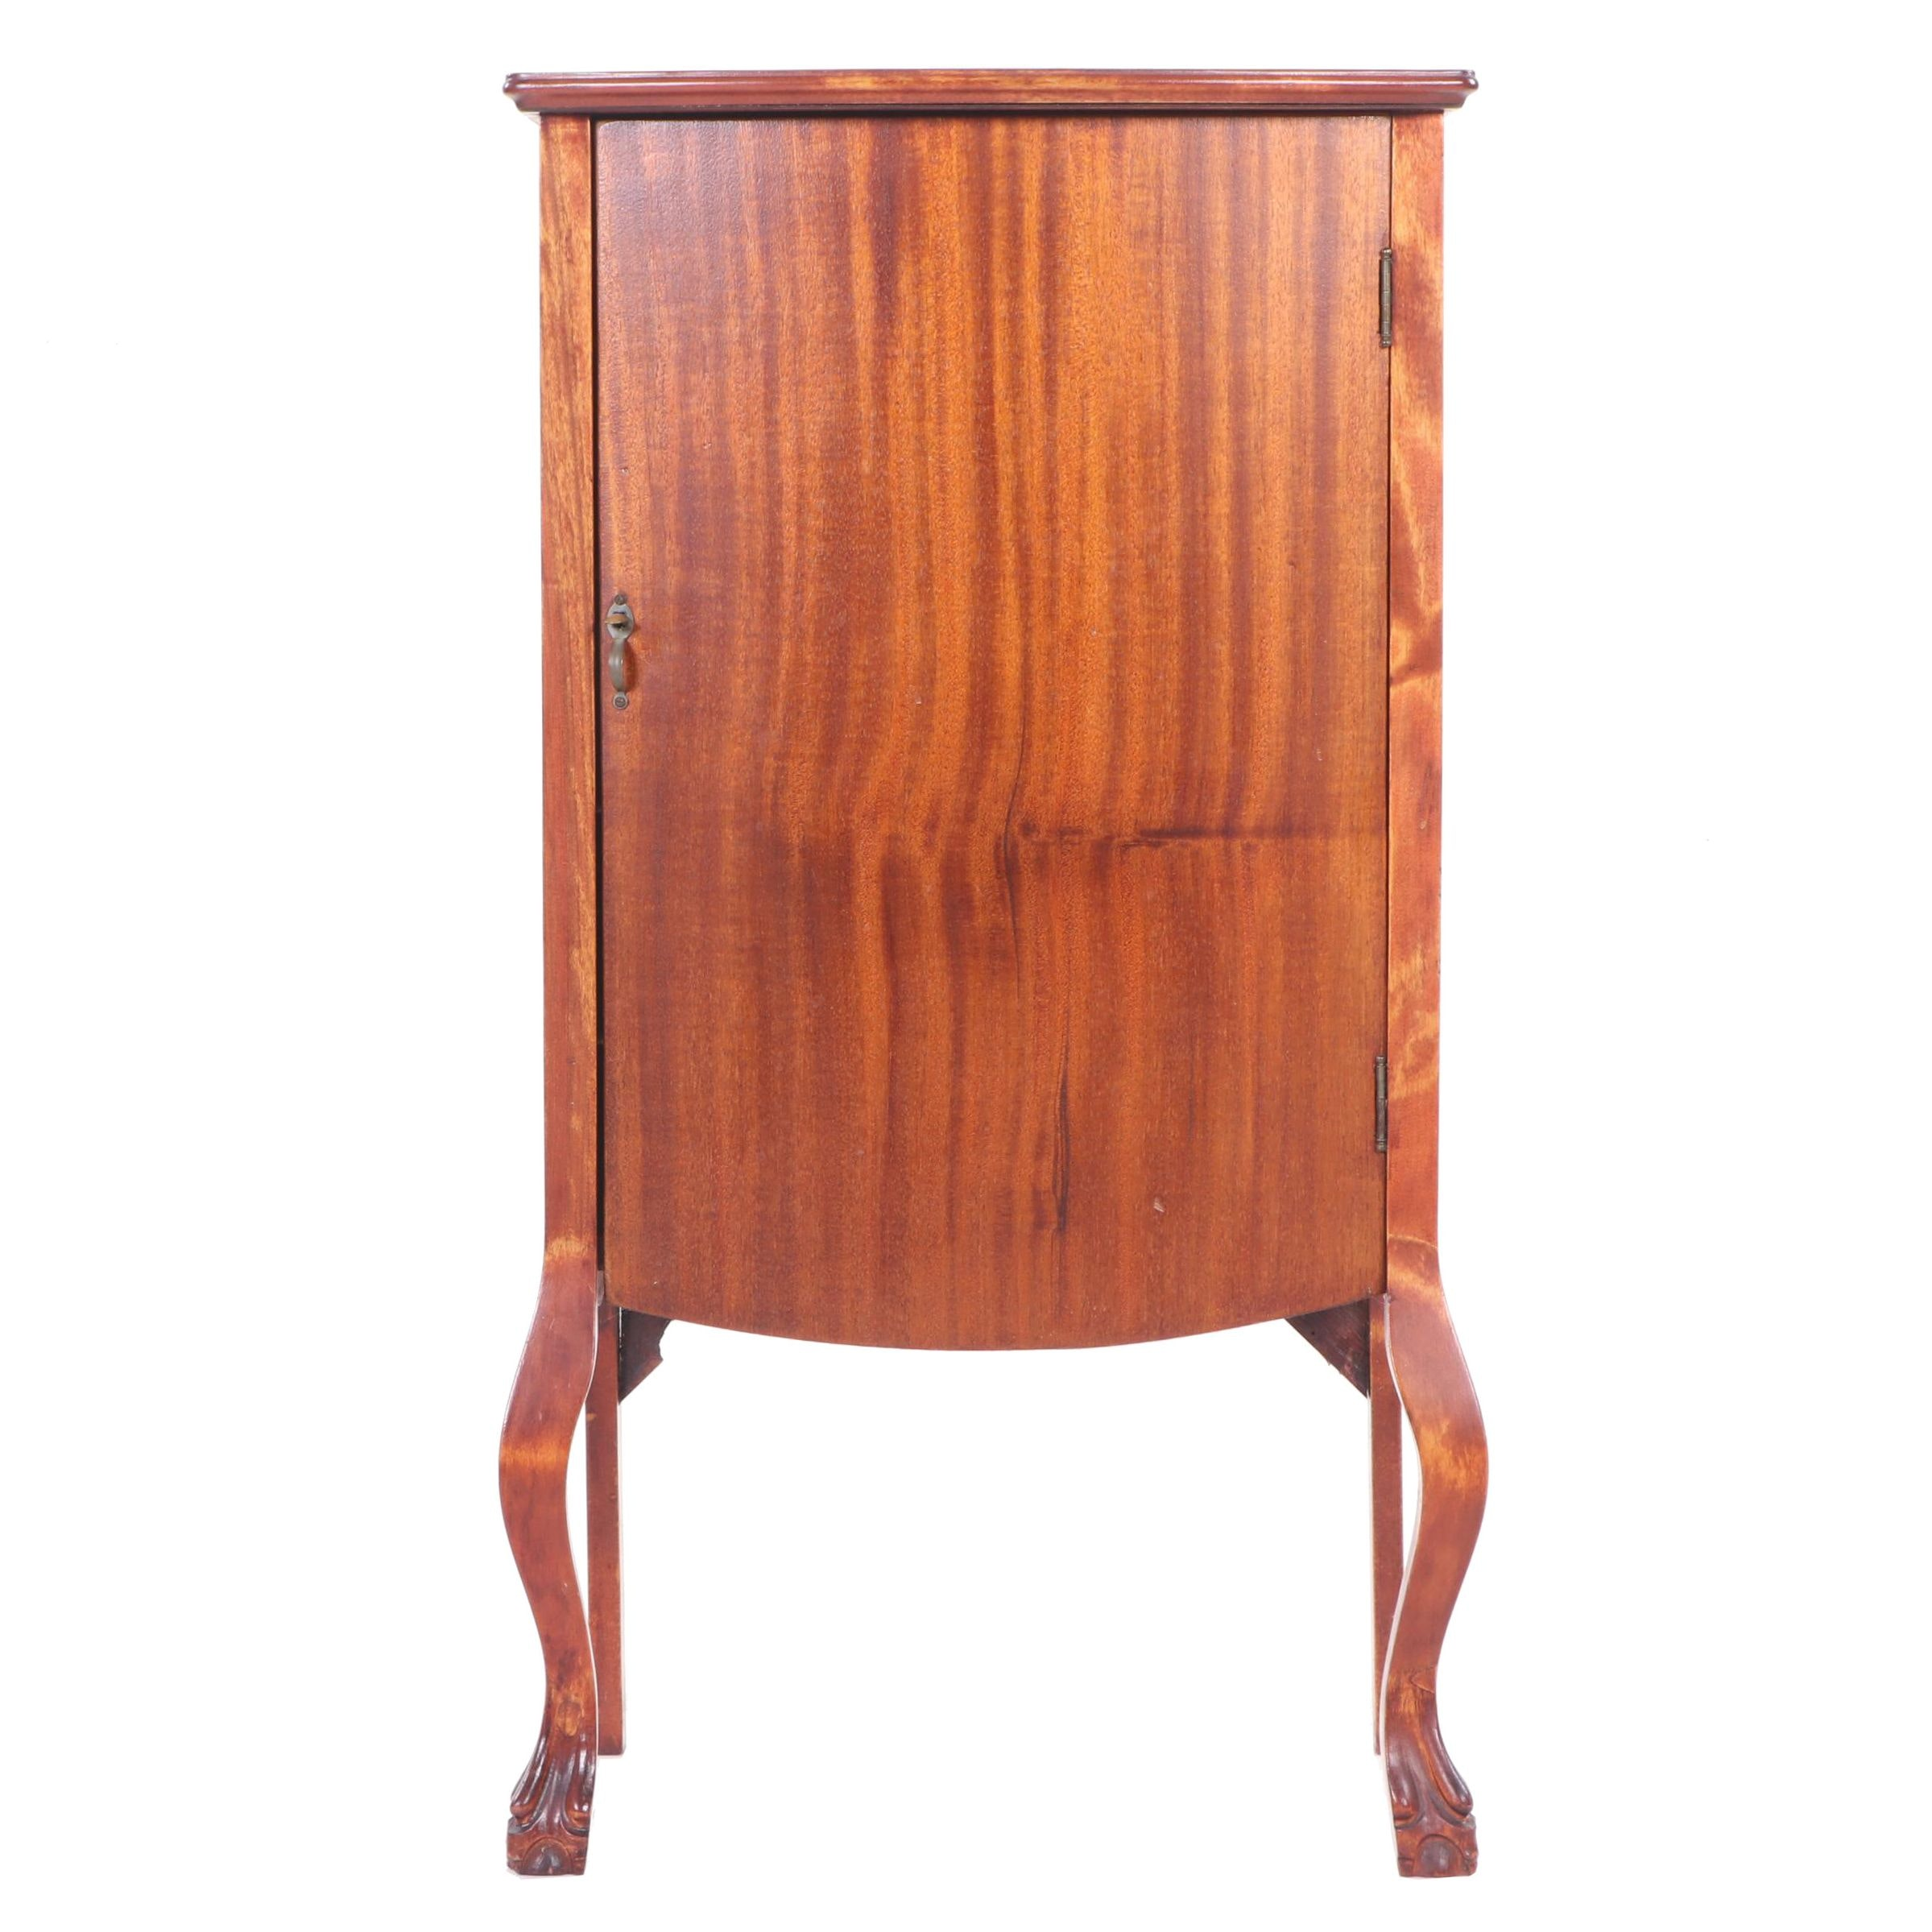 Colonial Revival Mahogany Sheet Music Cabinet, Early to Mid 20th Century